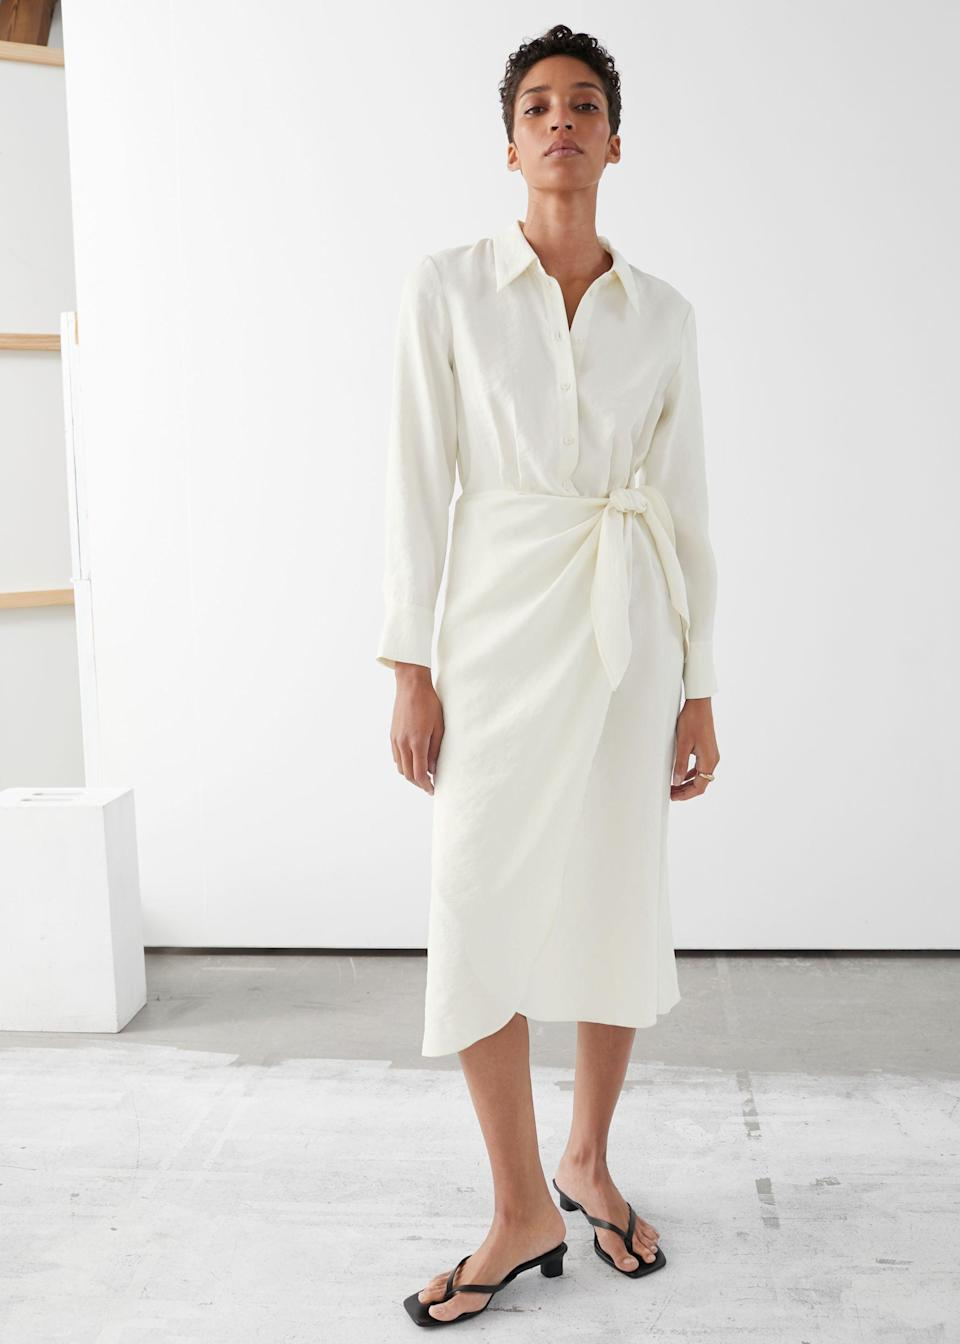 """<br> <br> <strong>& Other Stories</strong> Wrap Midi Dress, $, available at <a href=""""https://go.skimresources.com/?id=30283X879131&url=https%3A%2F%2Fwww.stories.com%2Fen_usd%2Fclothing%2Fdresses%2Fmidi-dresses%2Fproduct.wrap-midi-dress-white.0845339003.html"""" rel=""""nofollow noopener"""" target=""""_blank"""" data-ylk=""""slk:& Other Stories"""" class=""""link rapid-noclick-resp"""">& Other Stories</a>"""